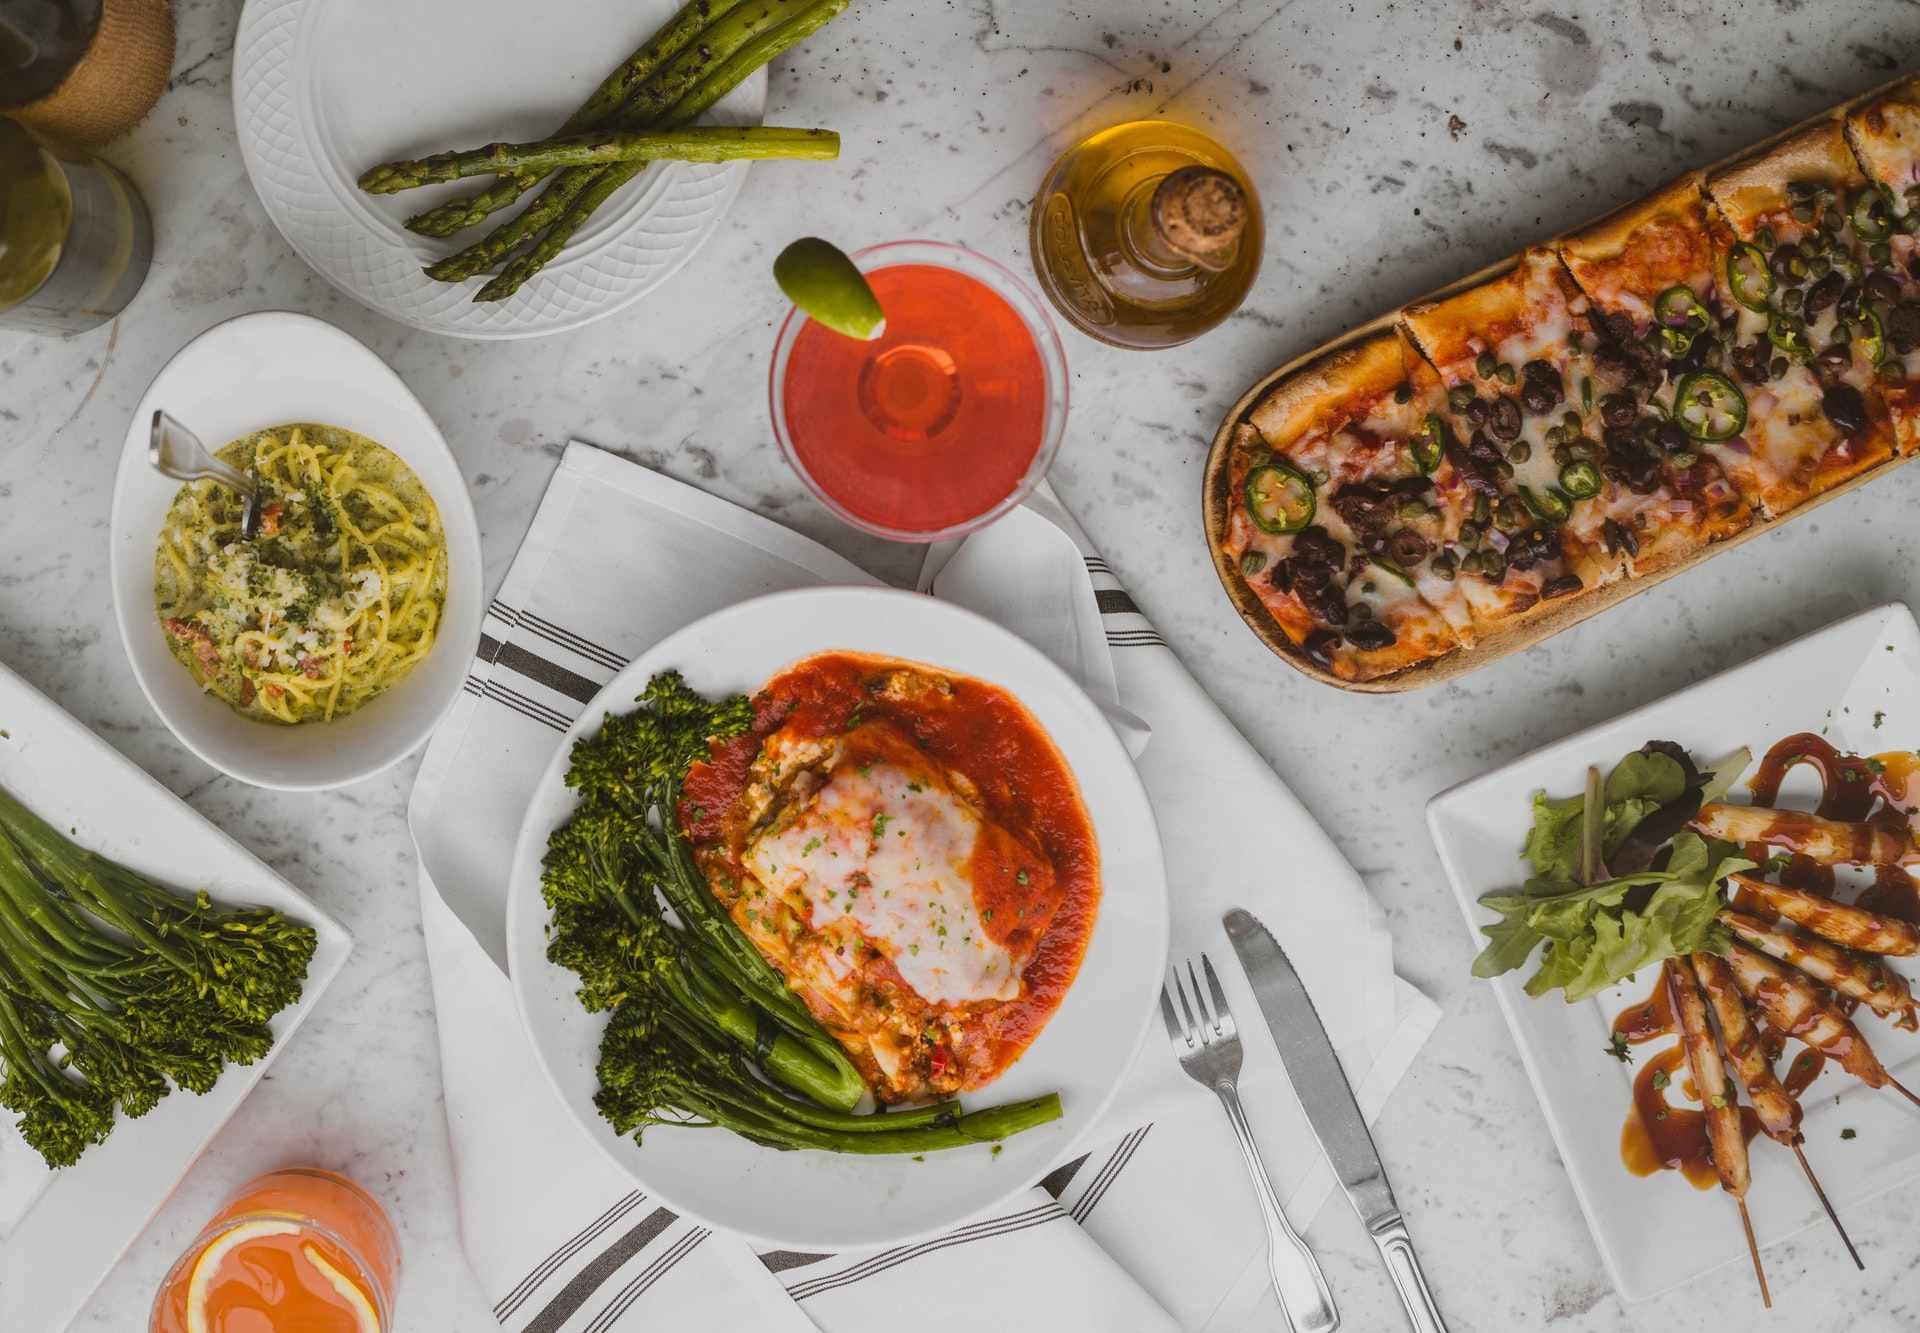 This Valentine's Day, Celebrate With Gourmet Italian Fare at Pacci's Trattoria